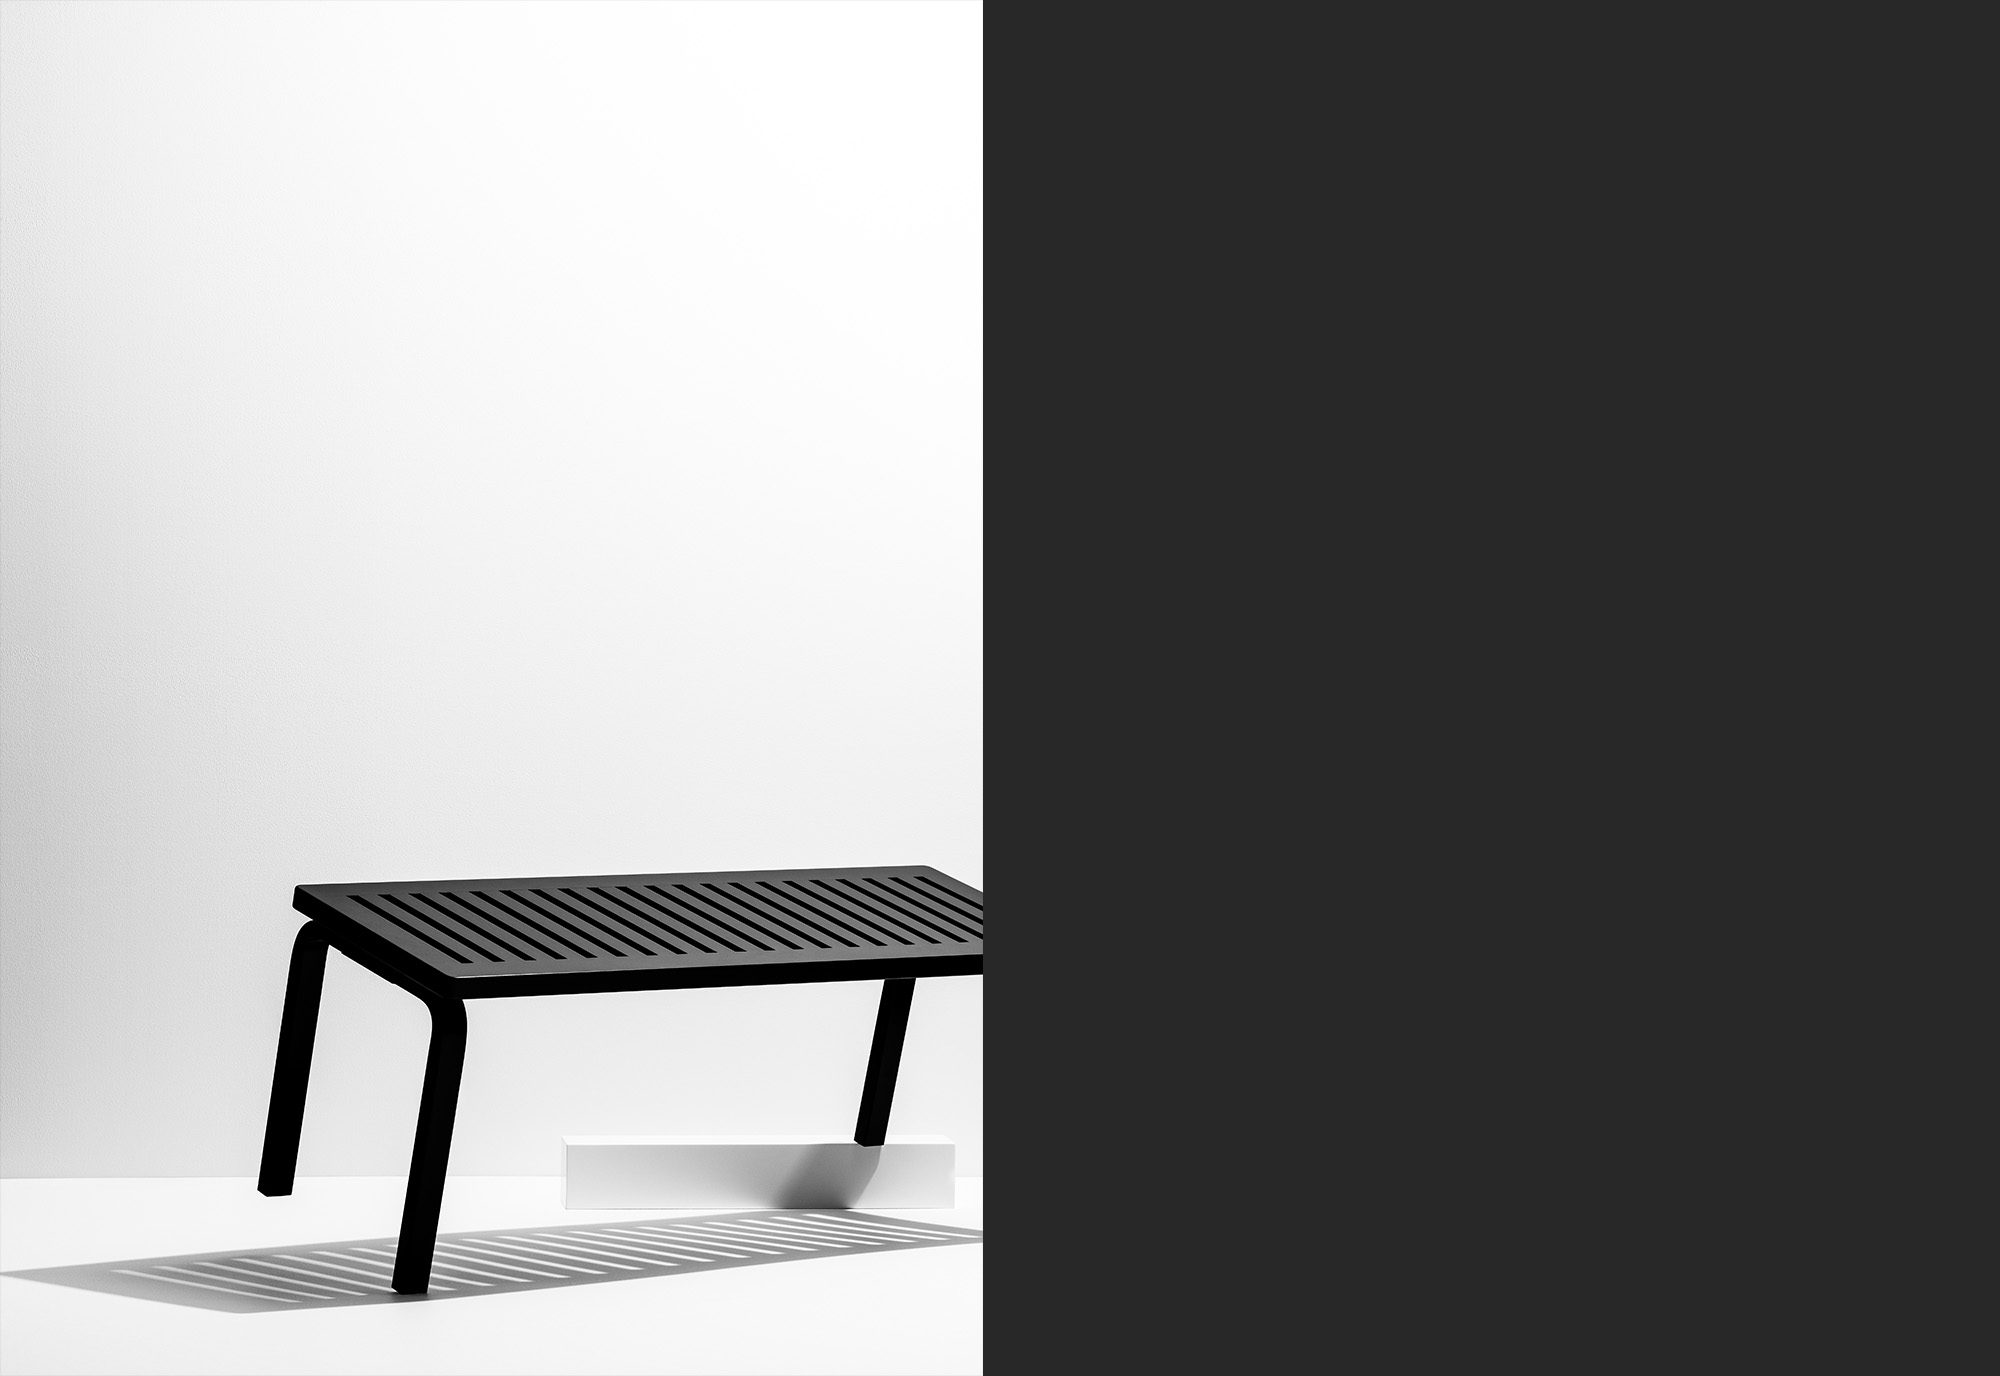 STOCKMANN_MONOCHROME_TREND_WHITE_BENCH-10_RT_flat-2.jpg